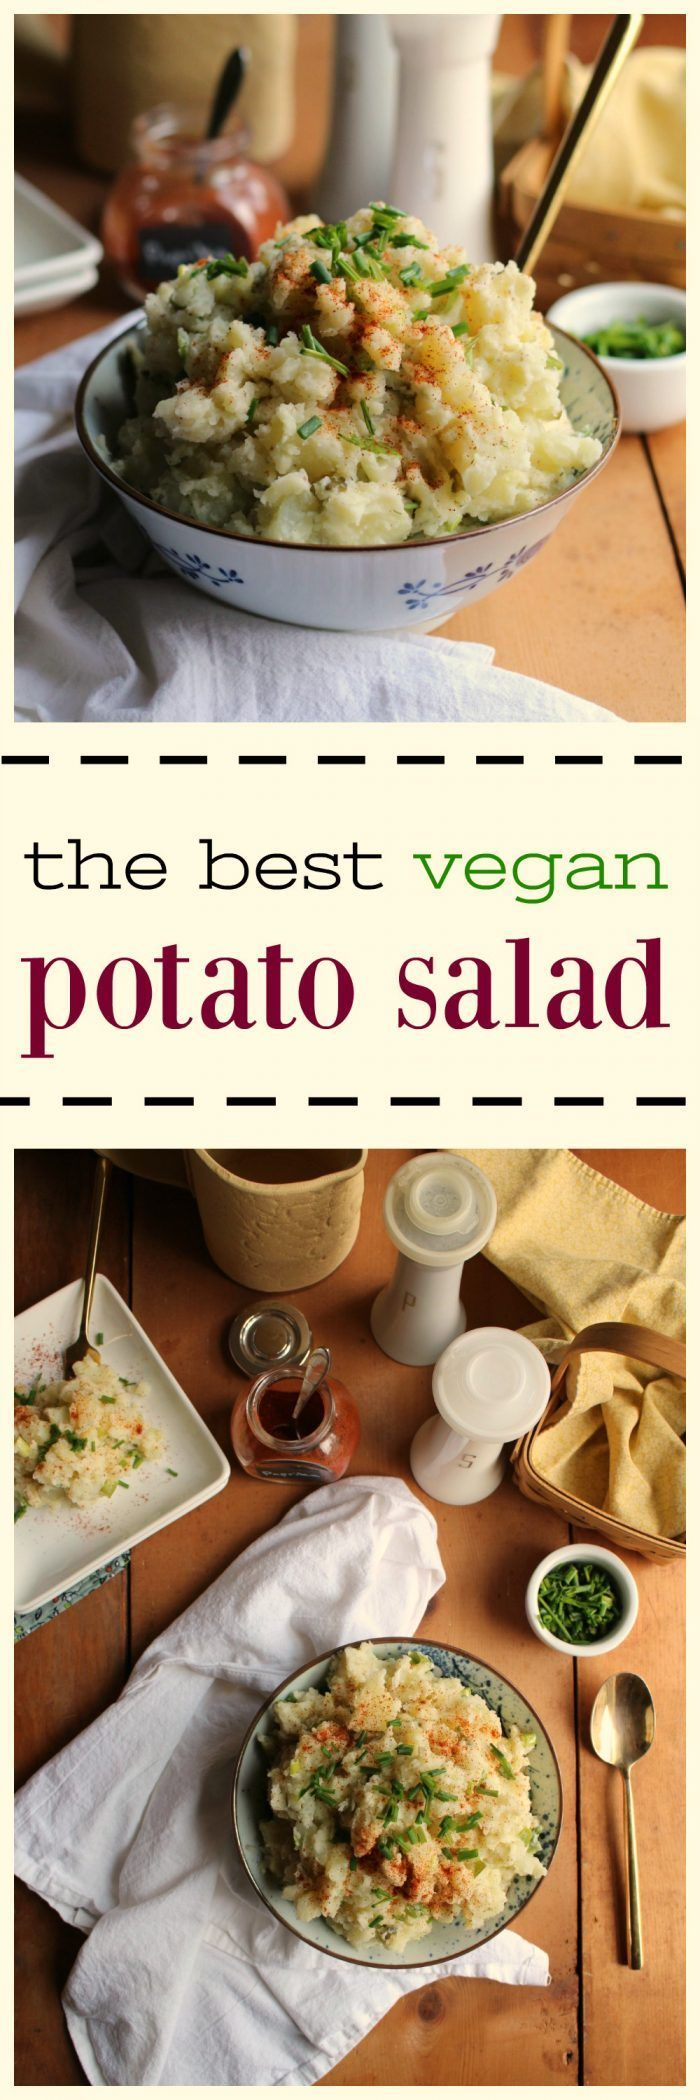 The Best Vegan Potato Salad.